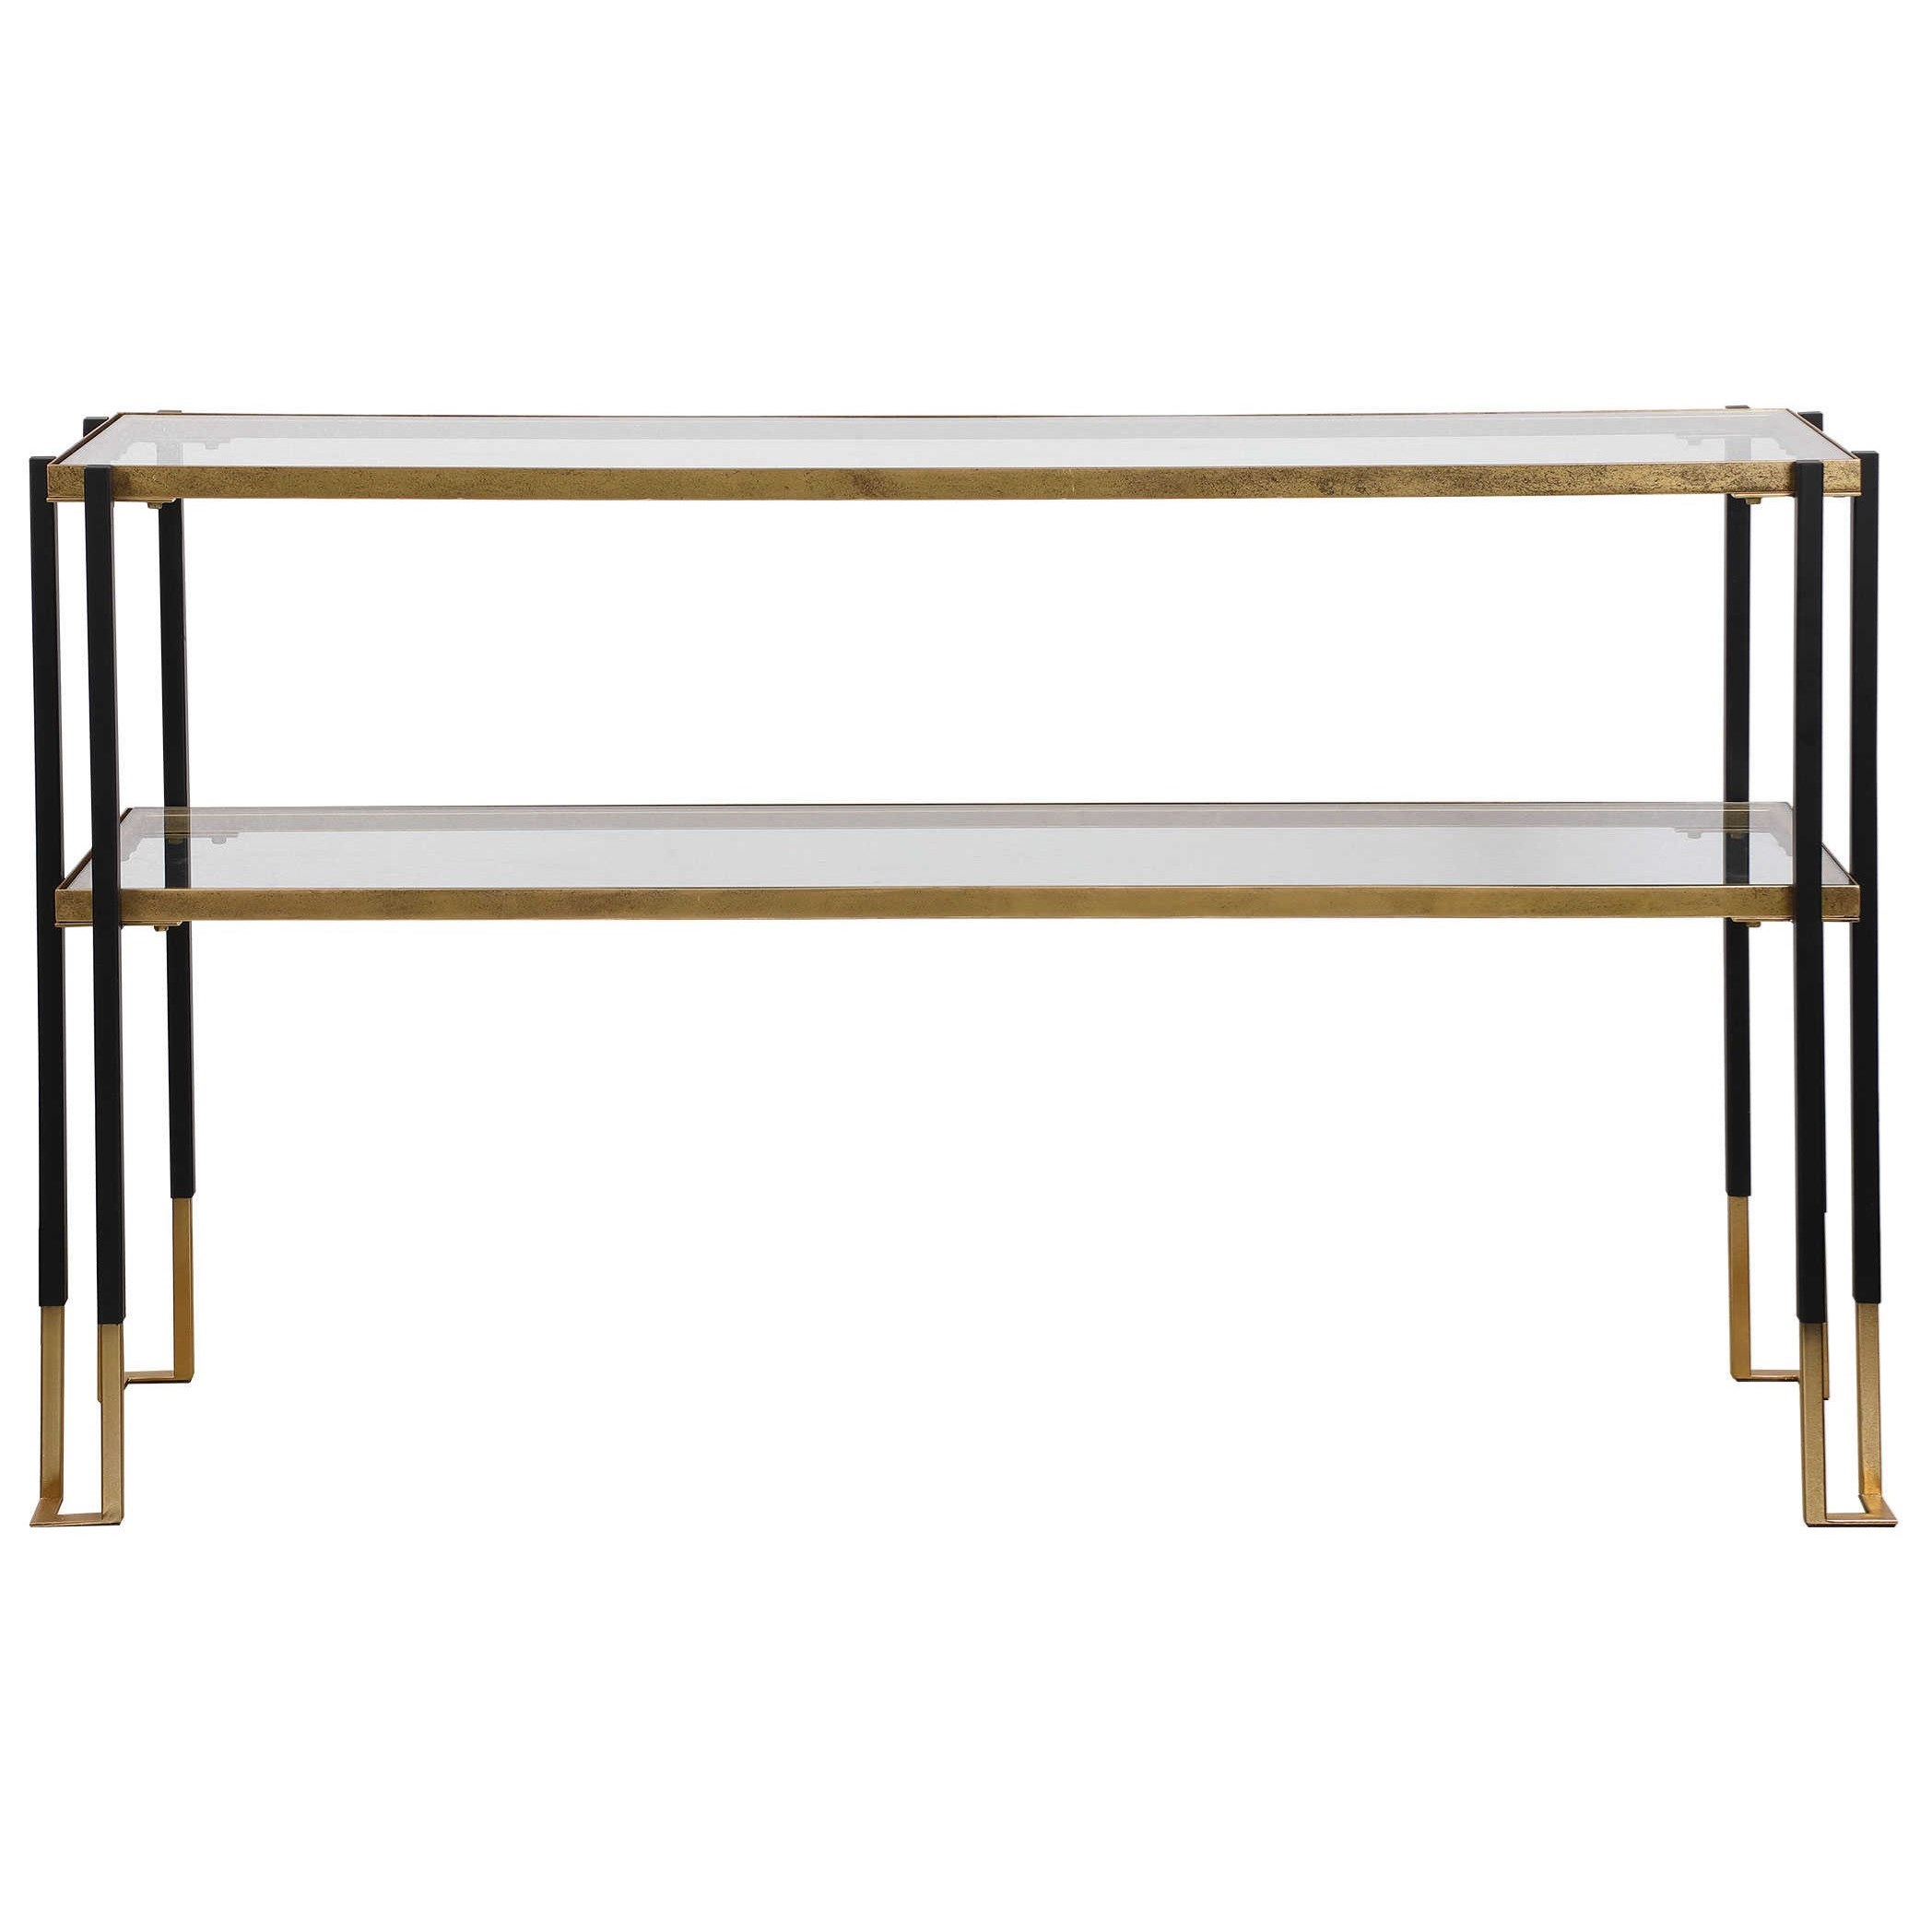 Accent Furniture - Occasional Tables Modern Console Table by Uttermost at Reid's Furniture